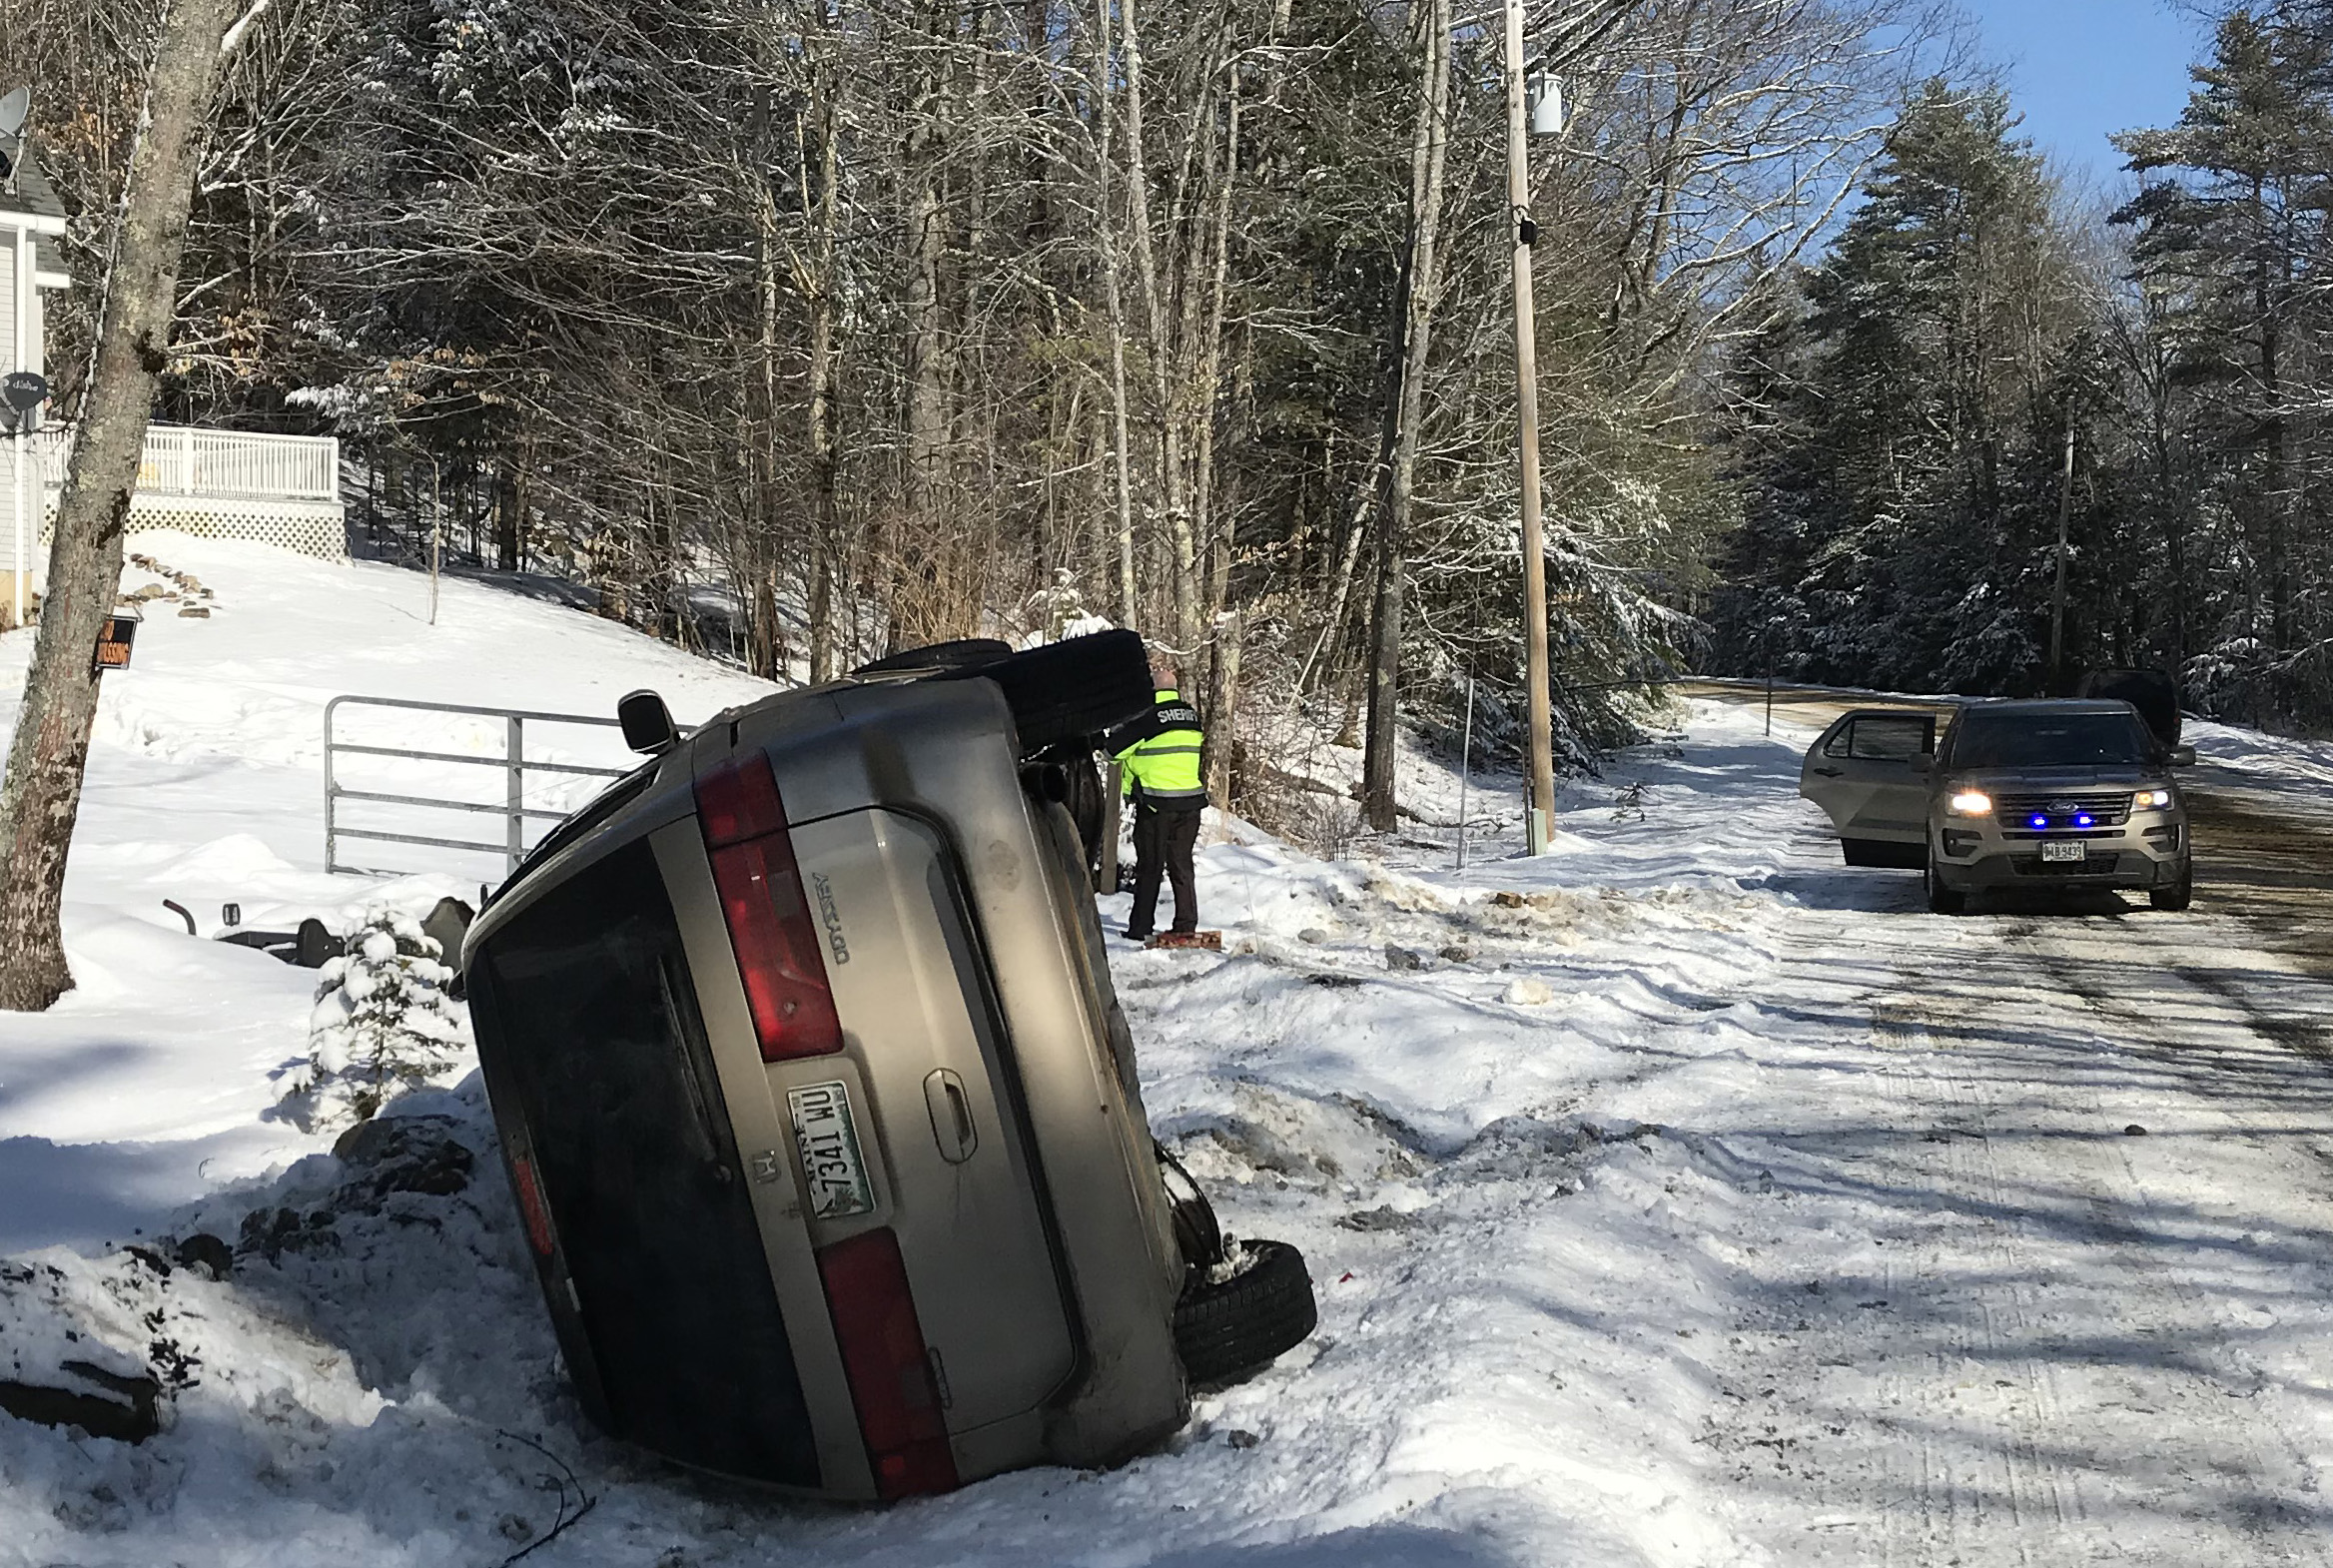 A 2001 Honda Odyssey rests on its side after a single-vehicle accident on East Pond Road in Nobleboro the morning of Sunday, March 3. There were no injuries, according to the Lincoln County Sheriff's Office.